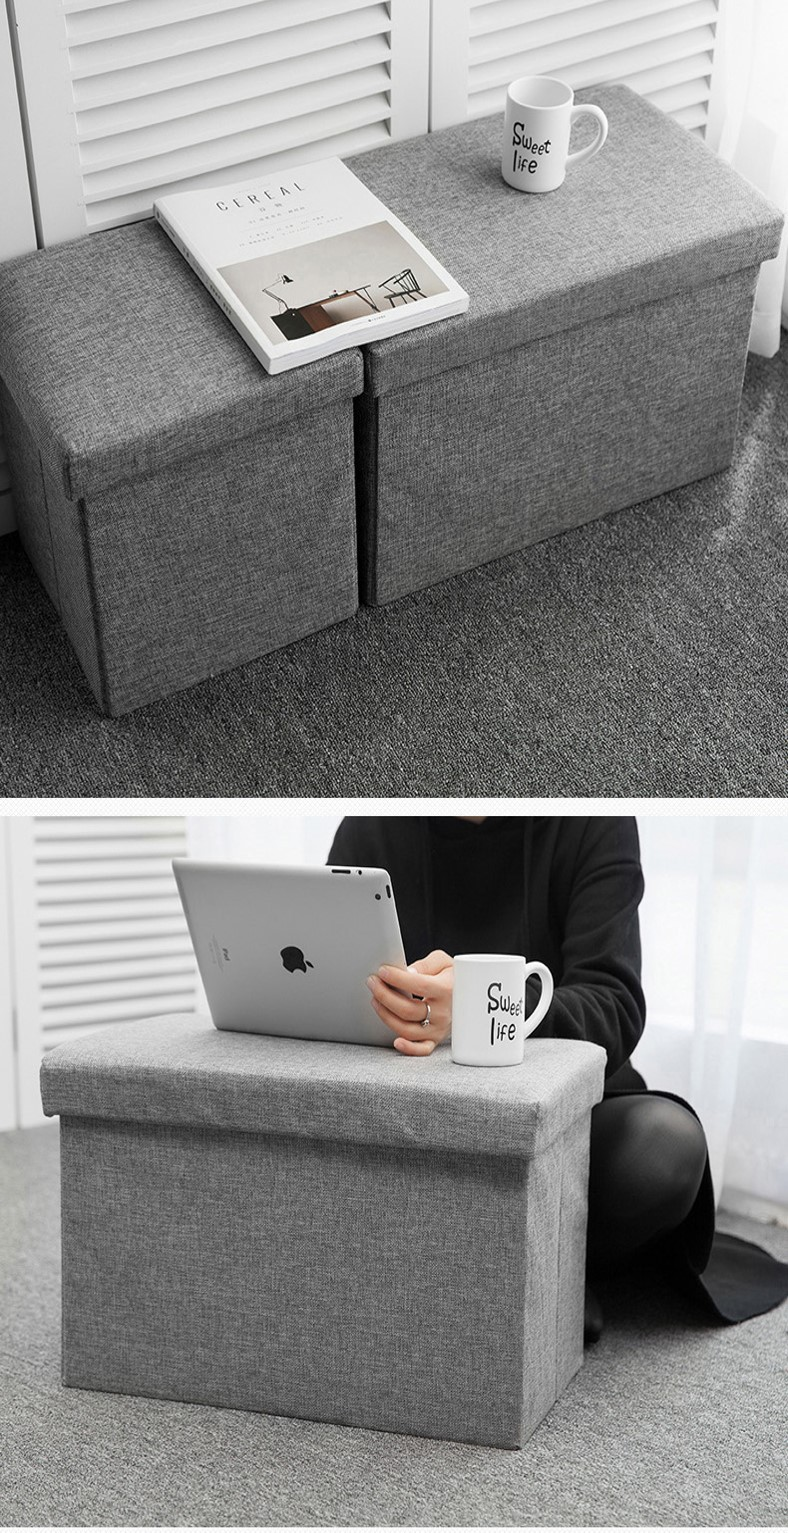 Wondrous Mytools Foldable Storage Ottoman 50 X 30 X 30 Fabric Foot Stool Seat Footrest Folding Storage Box Forskolin Free Trial Chair Design Images Forskolin Free Trialorg